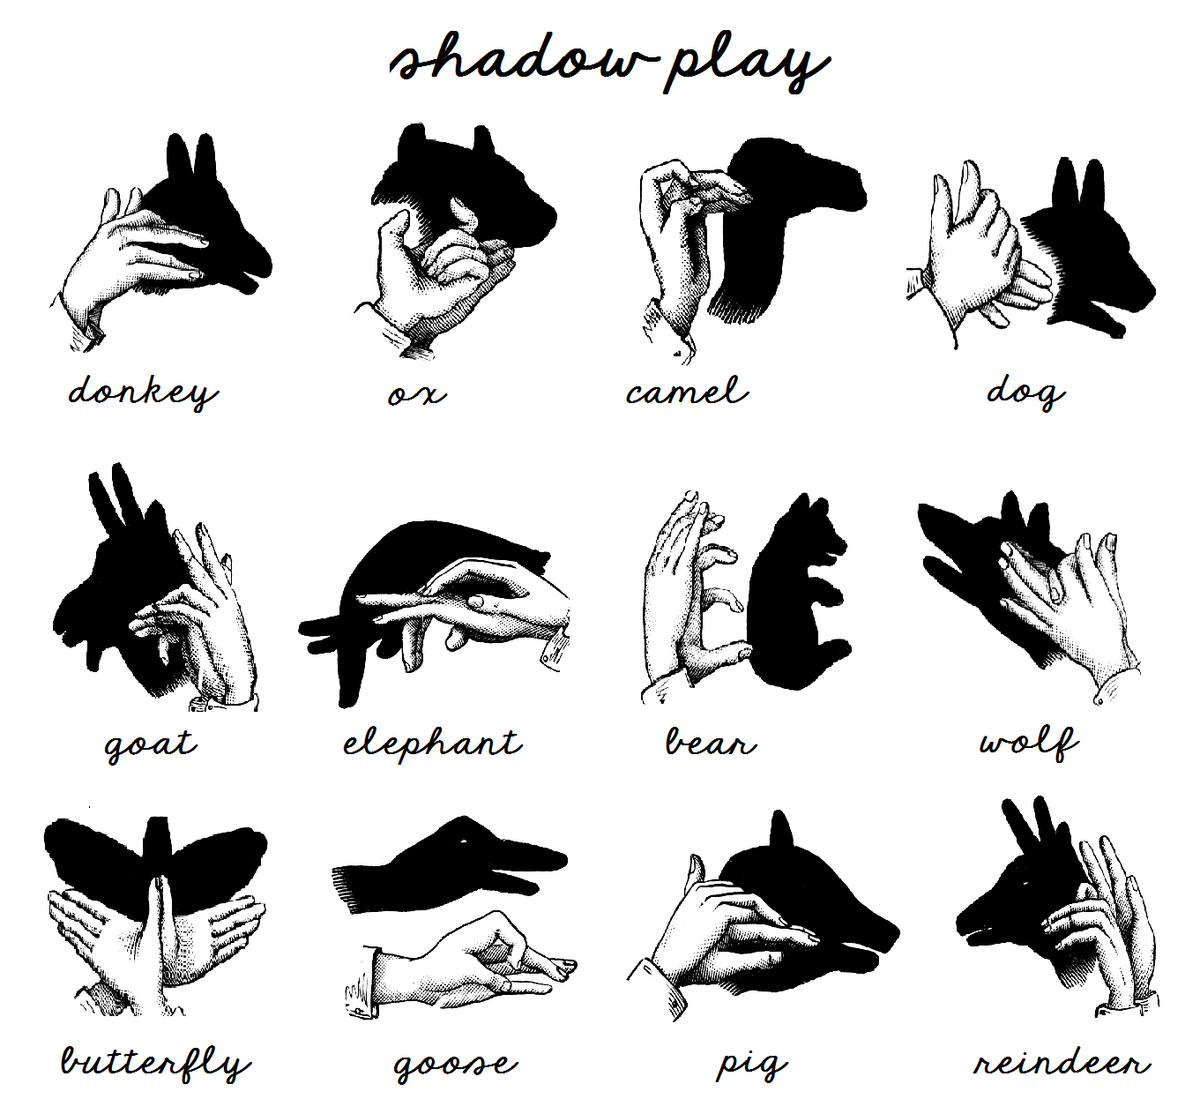 Useful shadow puppet how-to guide   http://bit.ly/2AqSlpT